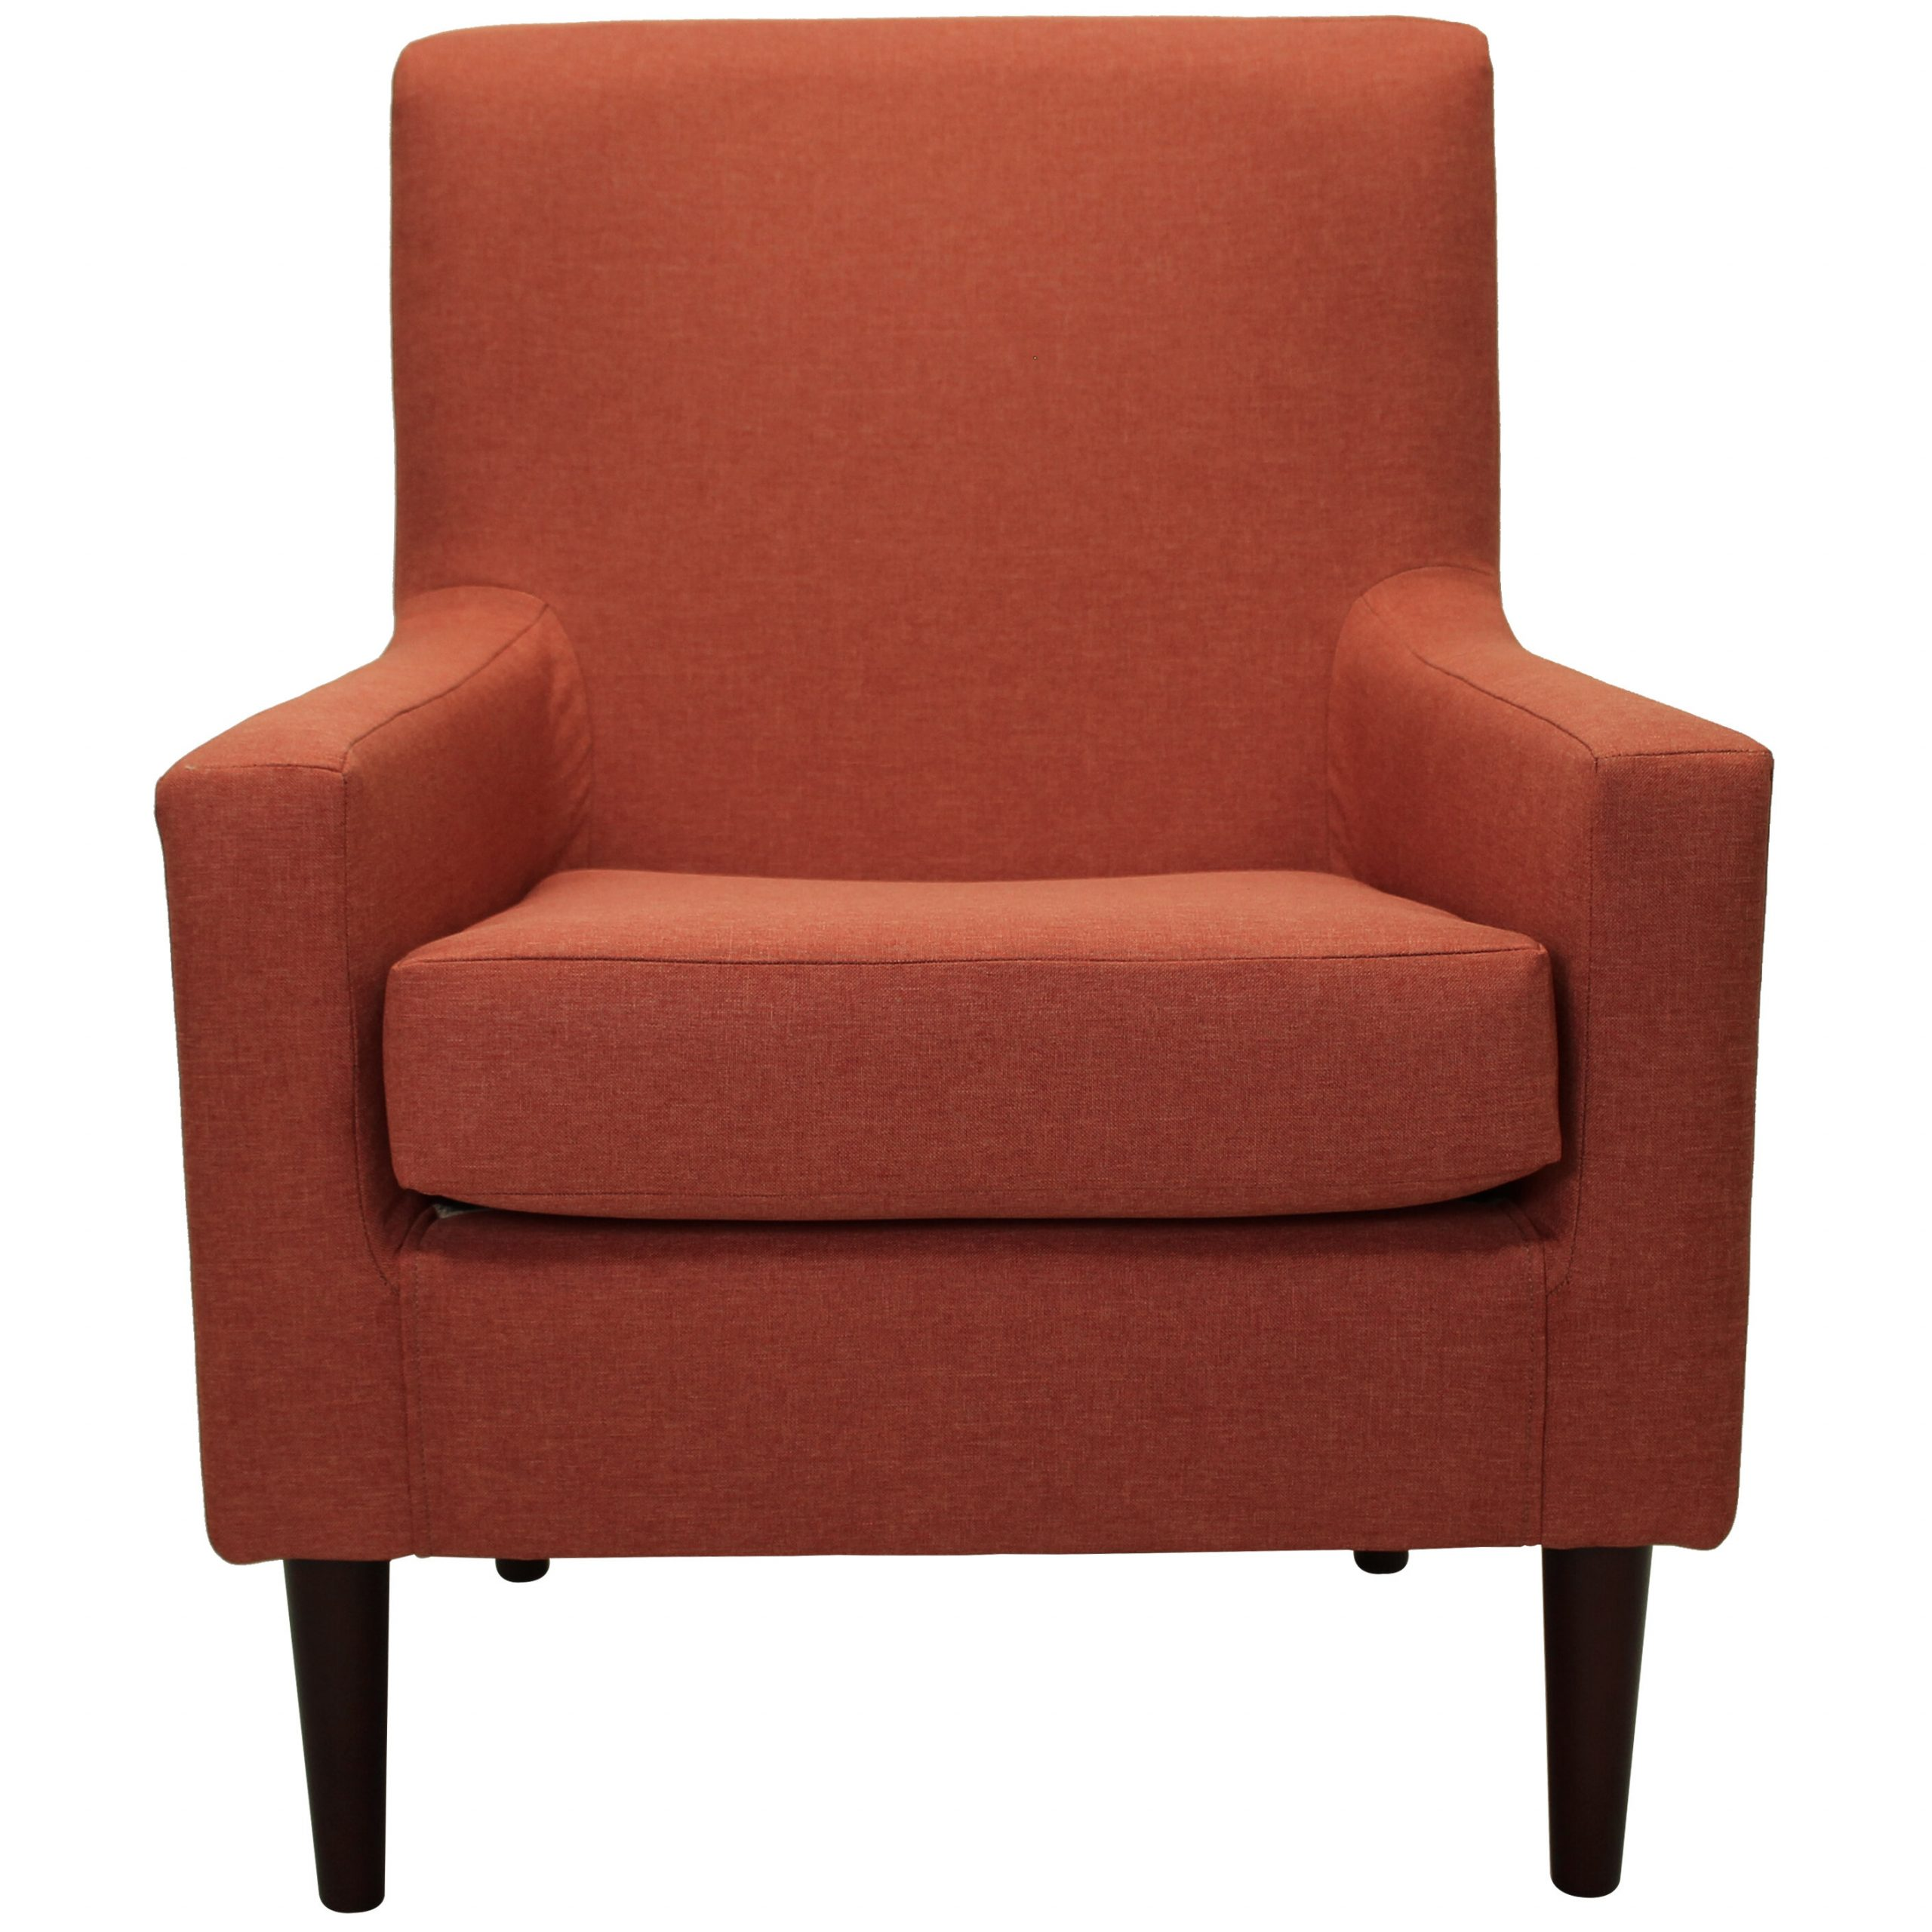 Brown Orange Accent Chairs You'Ll Love In 2021 | Wayfair Regarding Artressia Barrel Chairs (View 4 of 15)